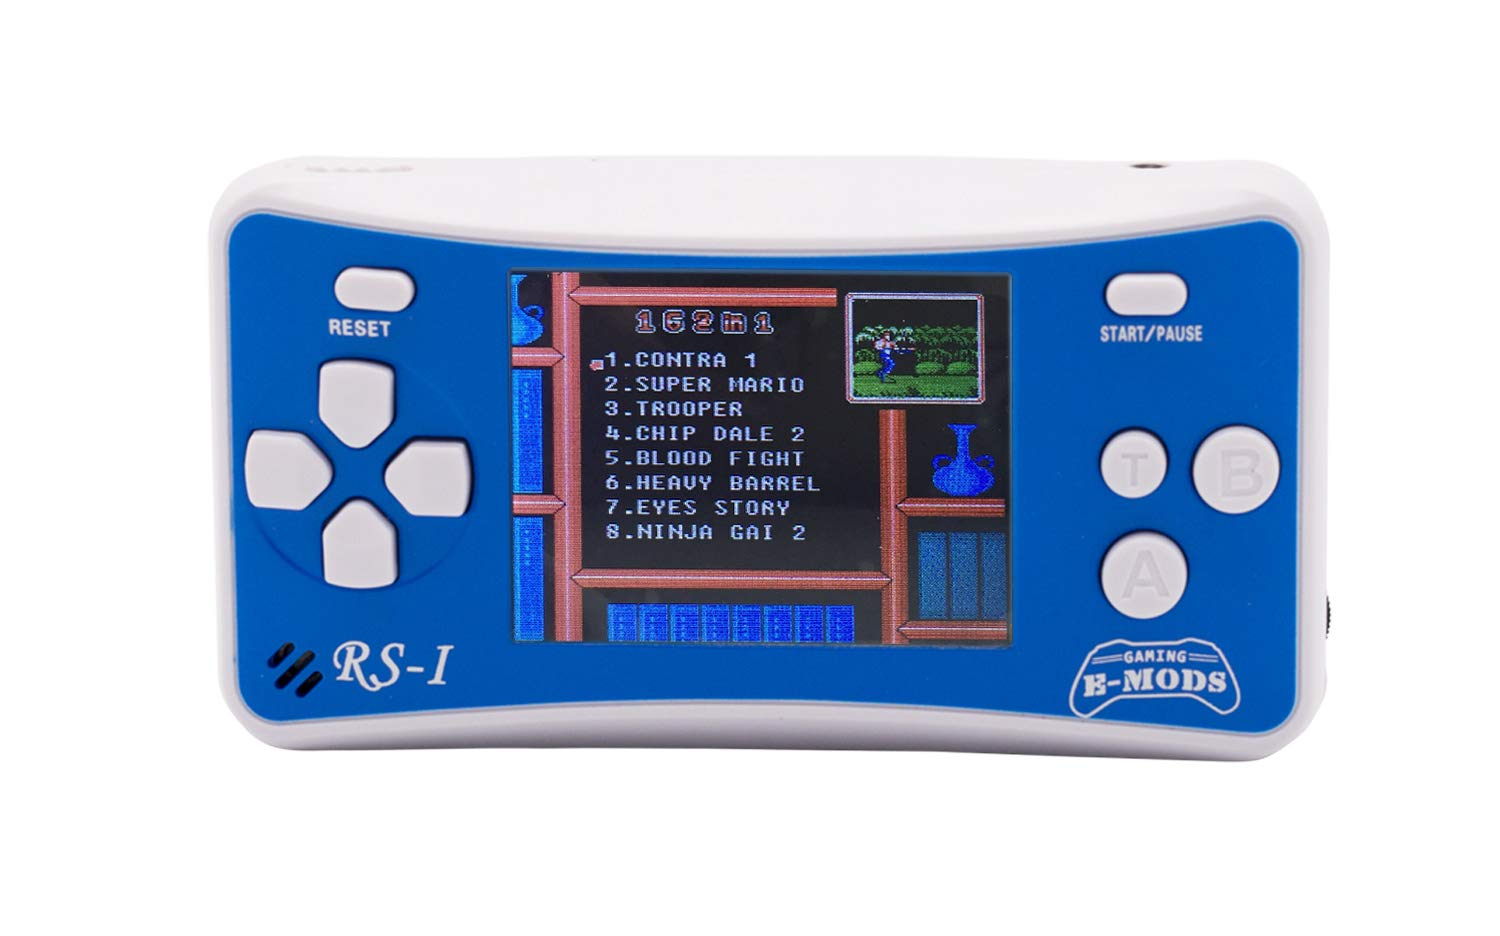 Hisonders 8-Bit Retro Portable Video Game Player for Kids, Handheld Console Built in 162 Games (Blue)